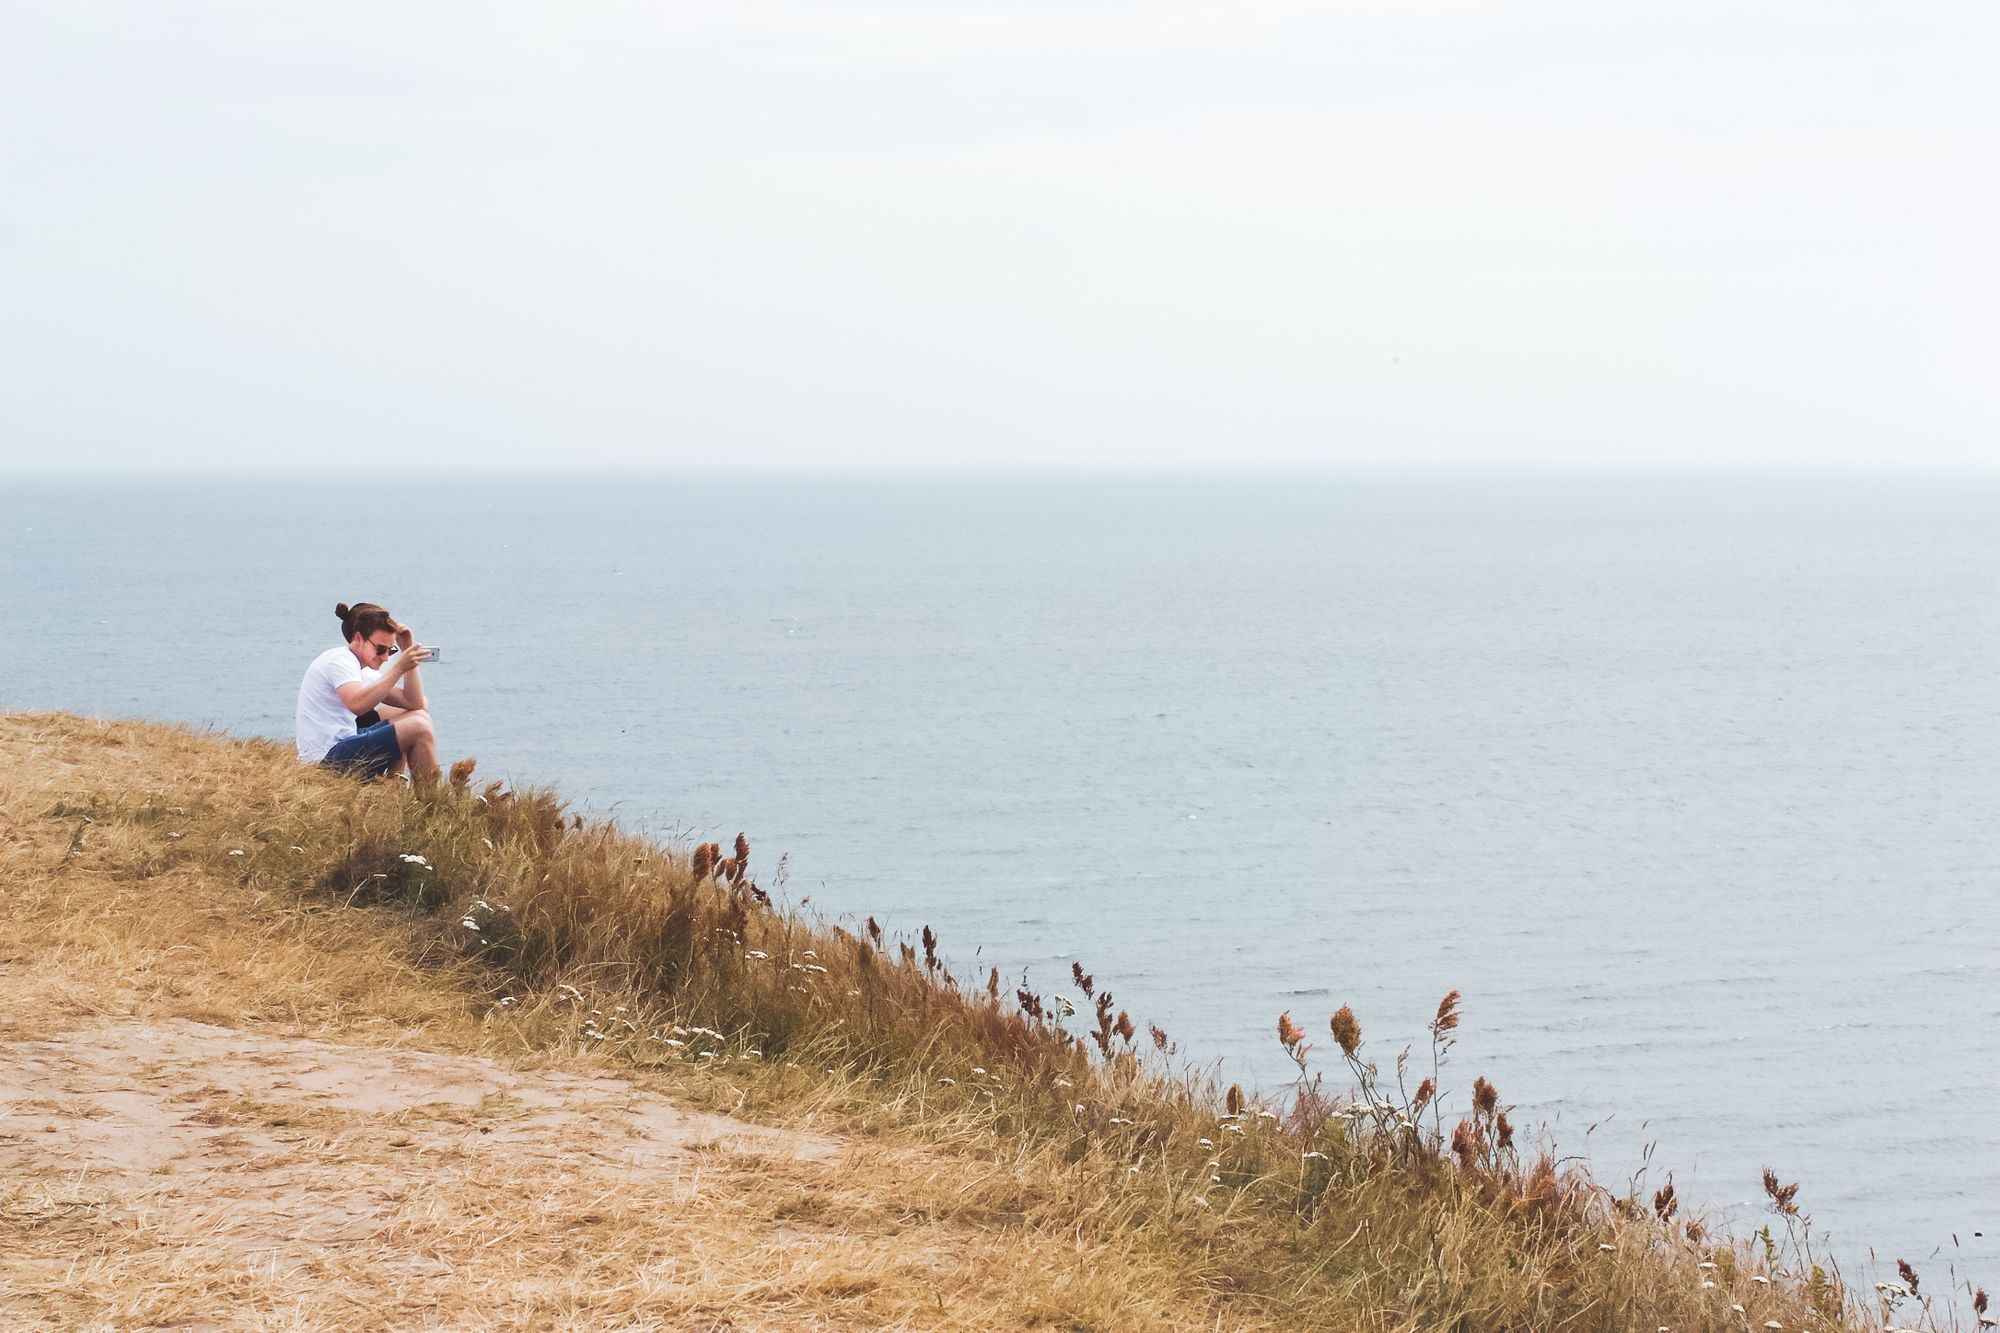 Picturesque view of the grassy hill over the ocean.